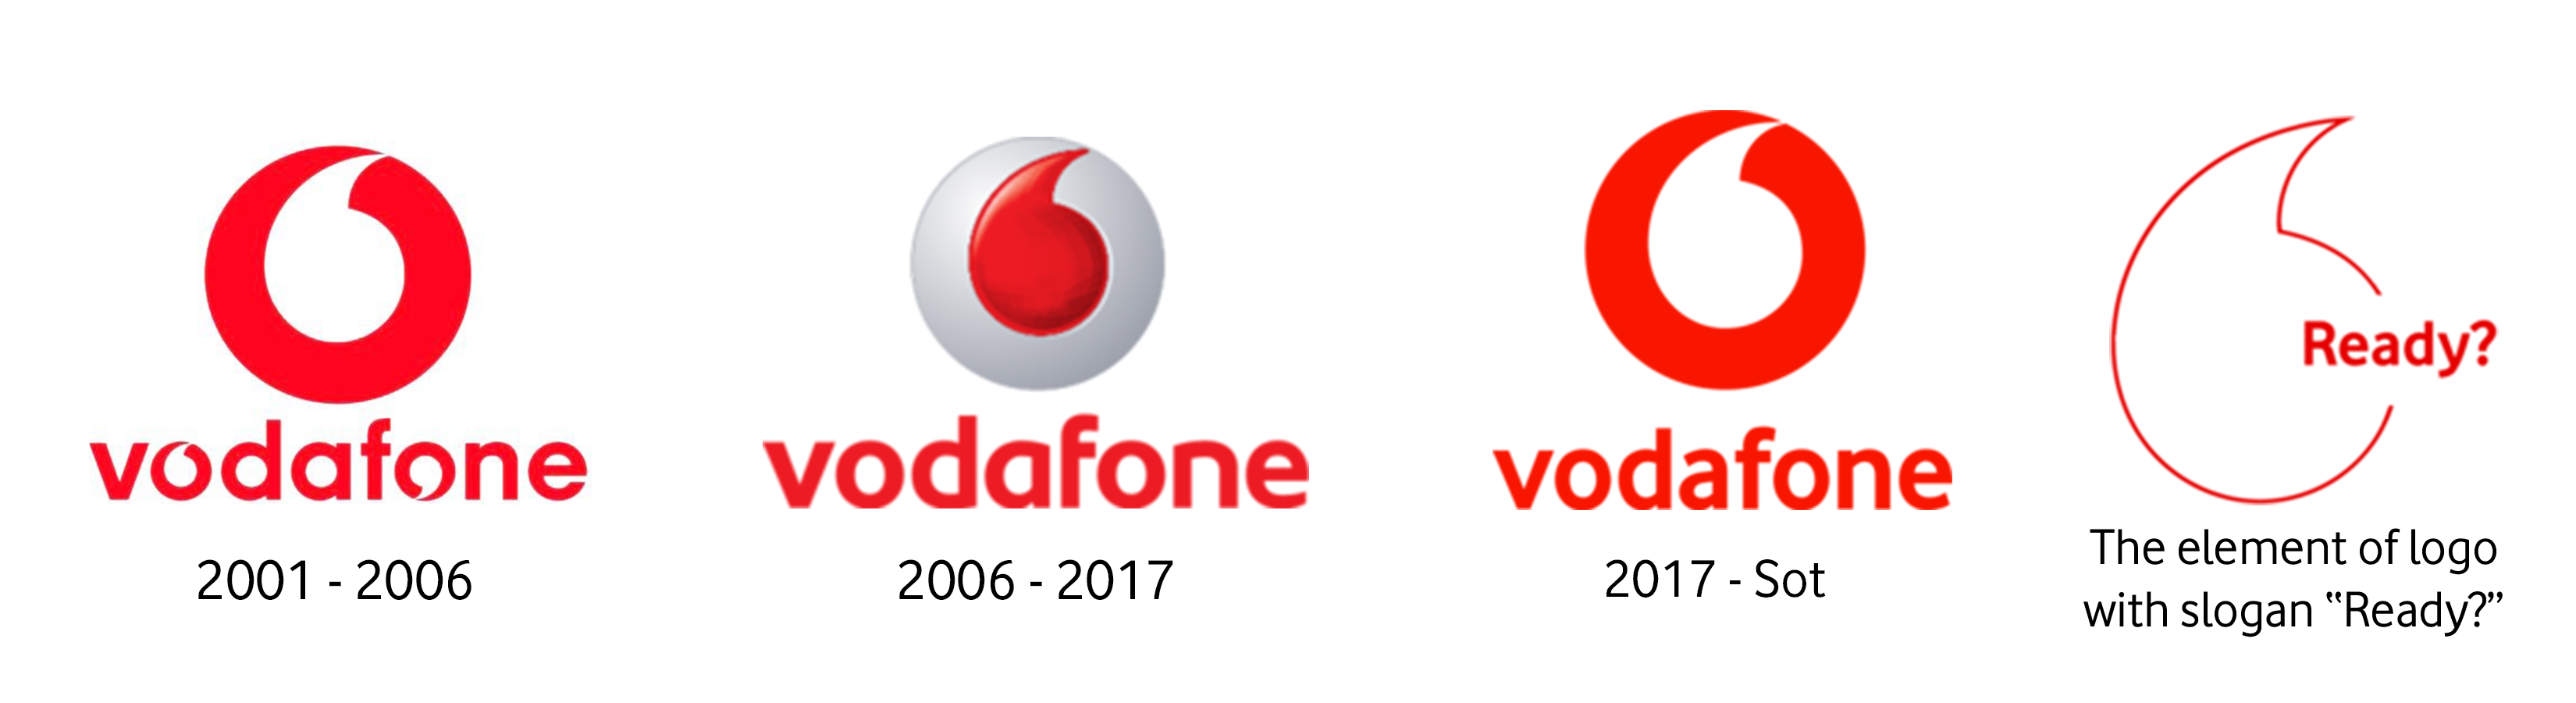 File:Vodafone logos since 2001.png.